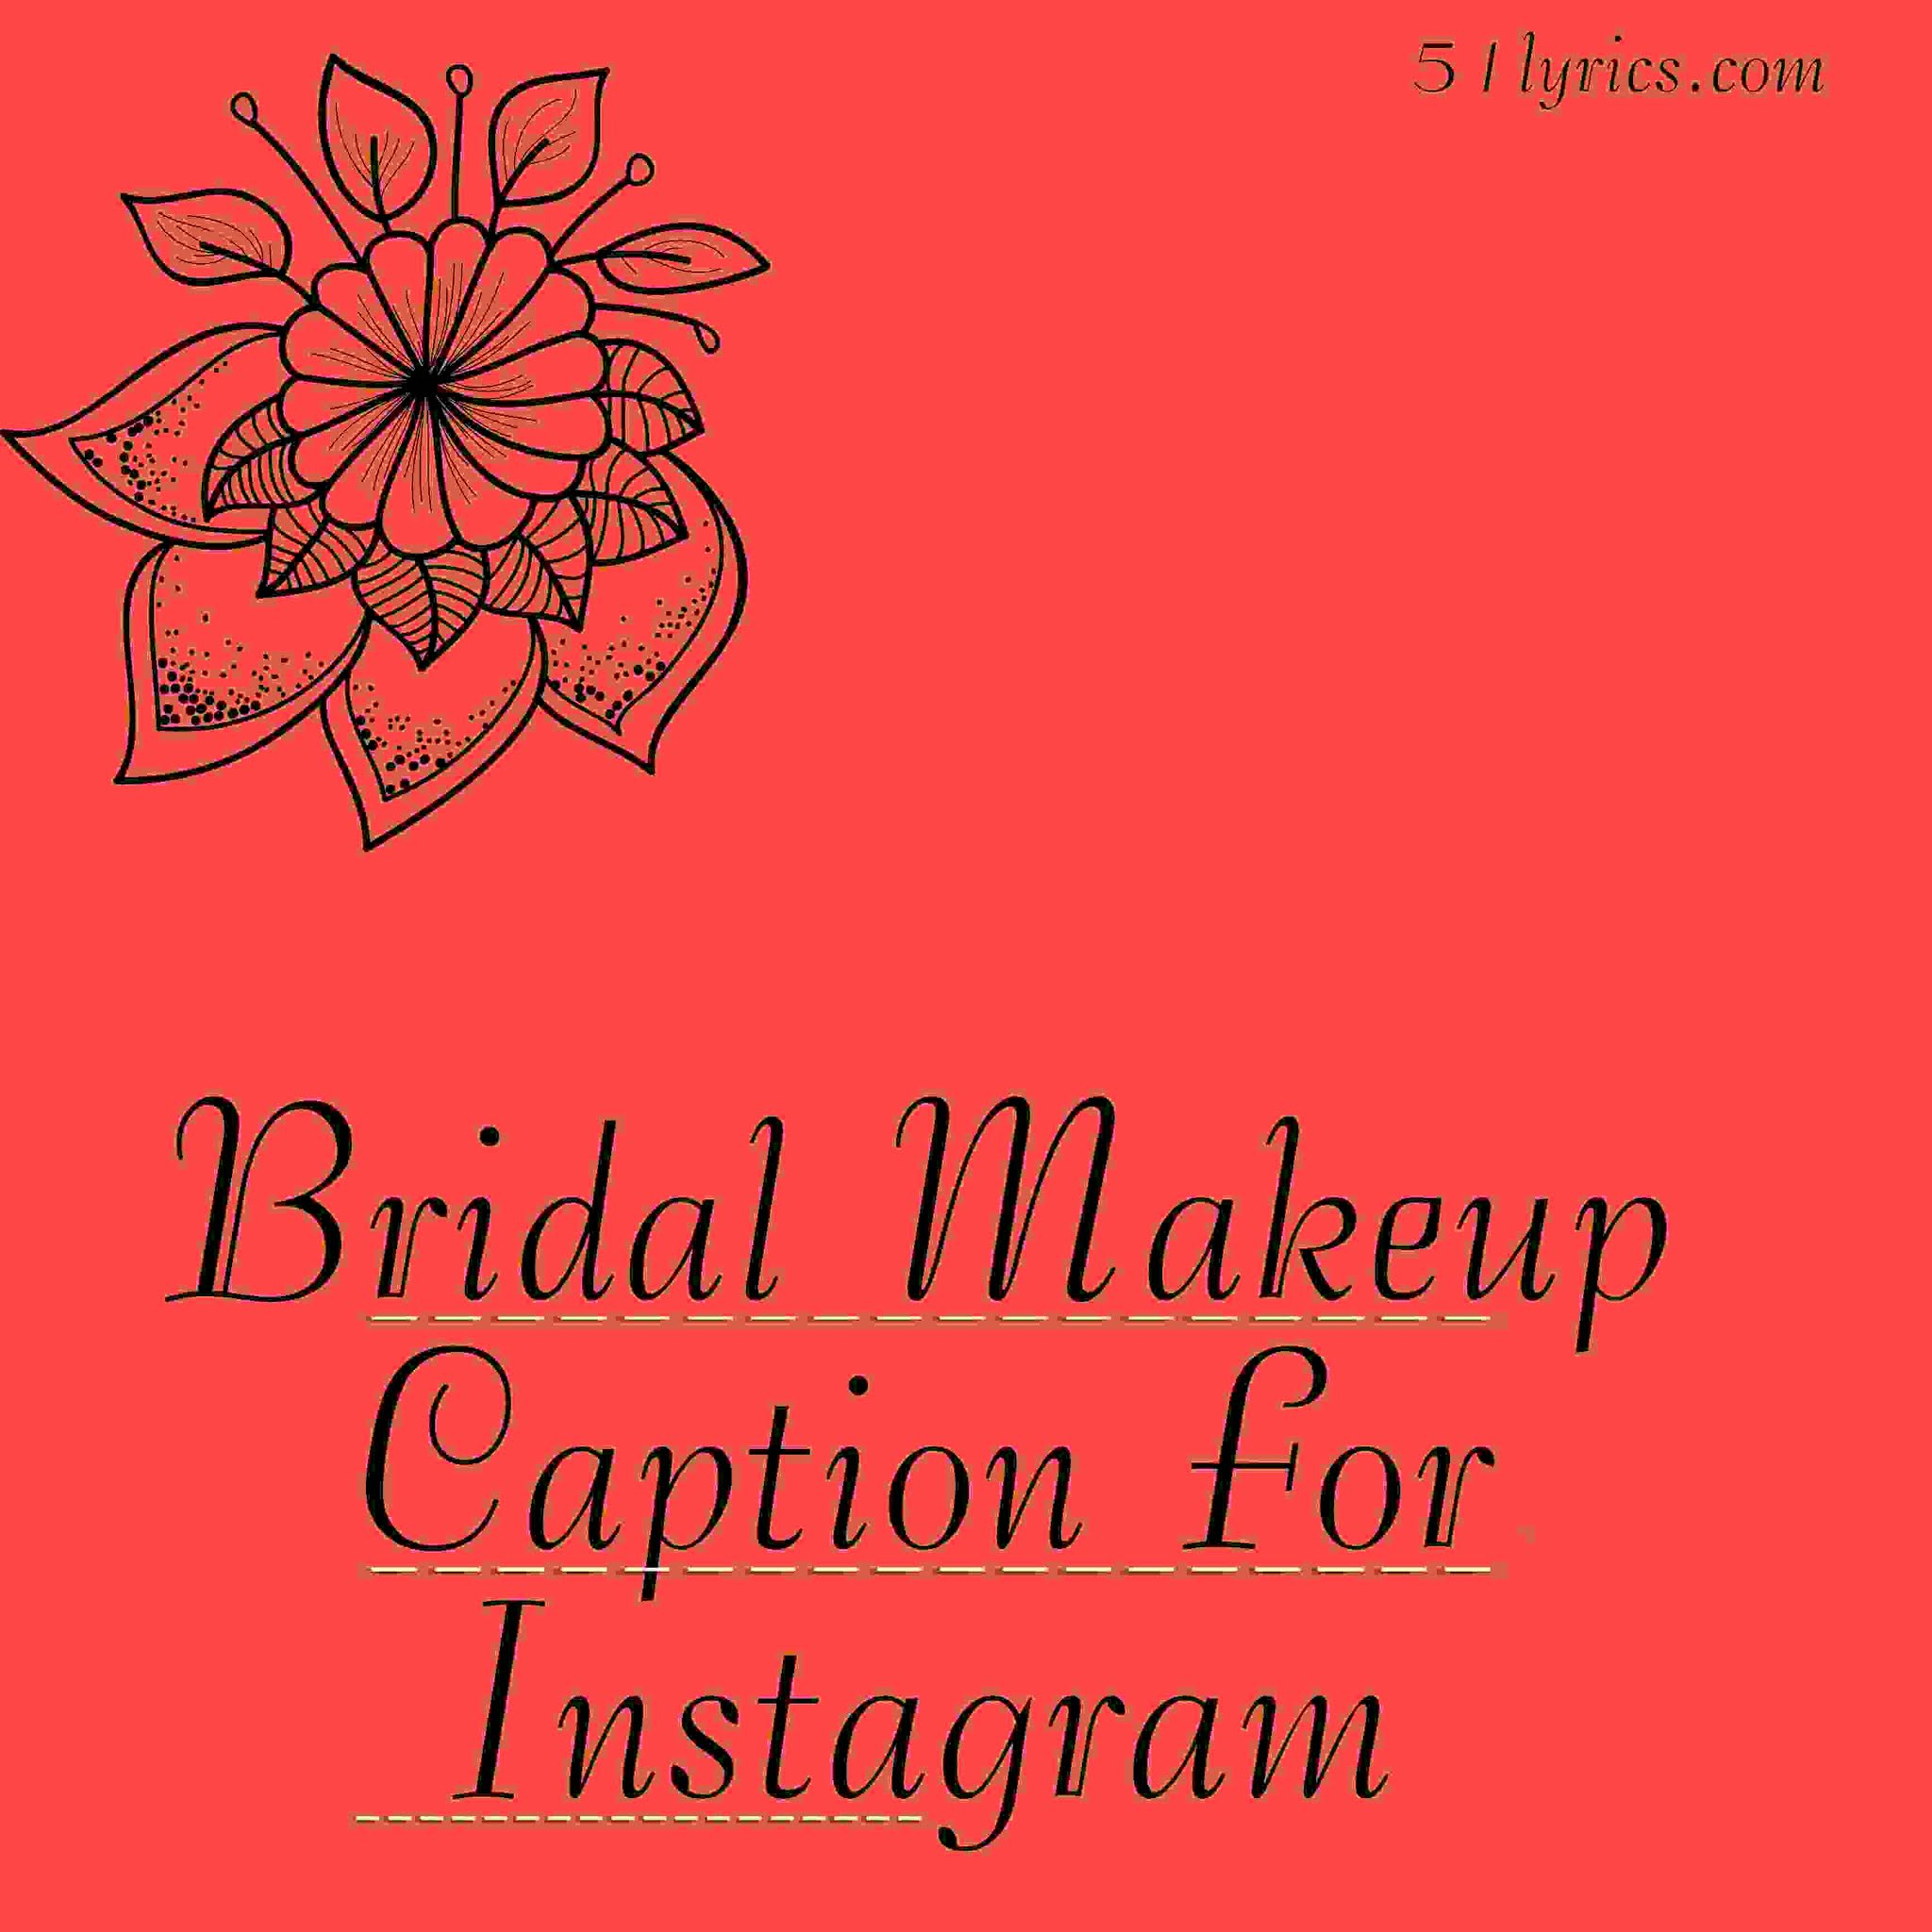 bridal makeup captions images, photo for bridal captions, bridal lehenga captions images, captions with images